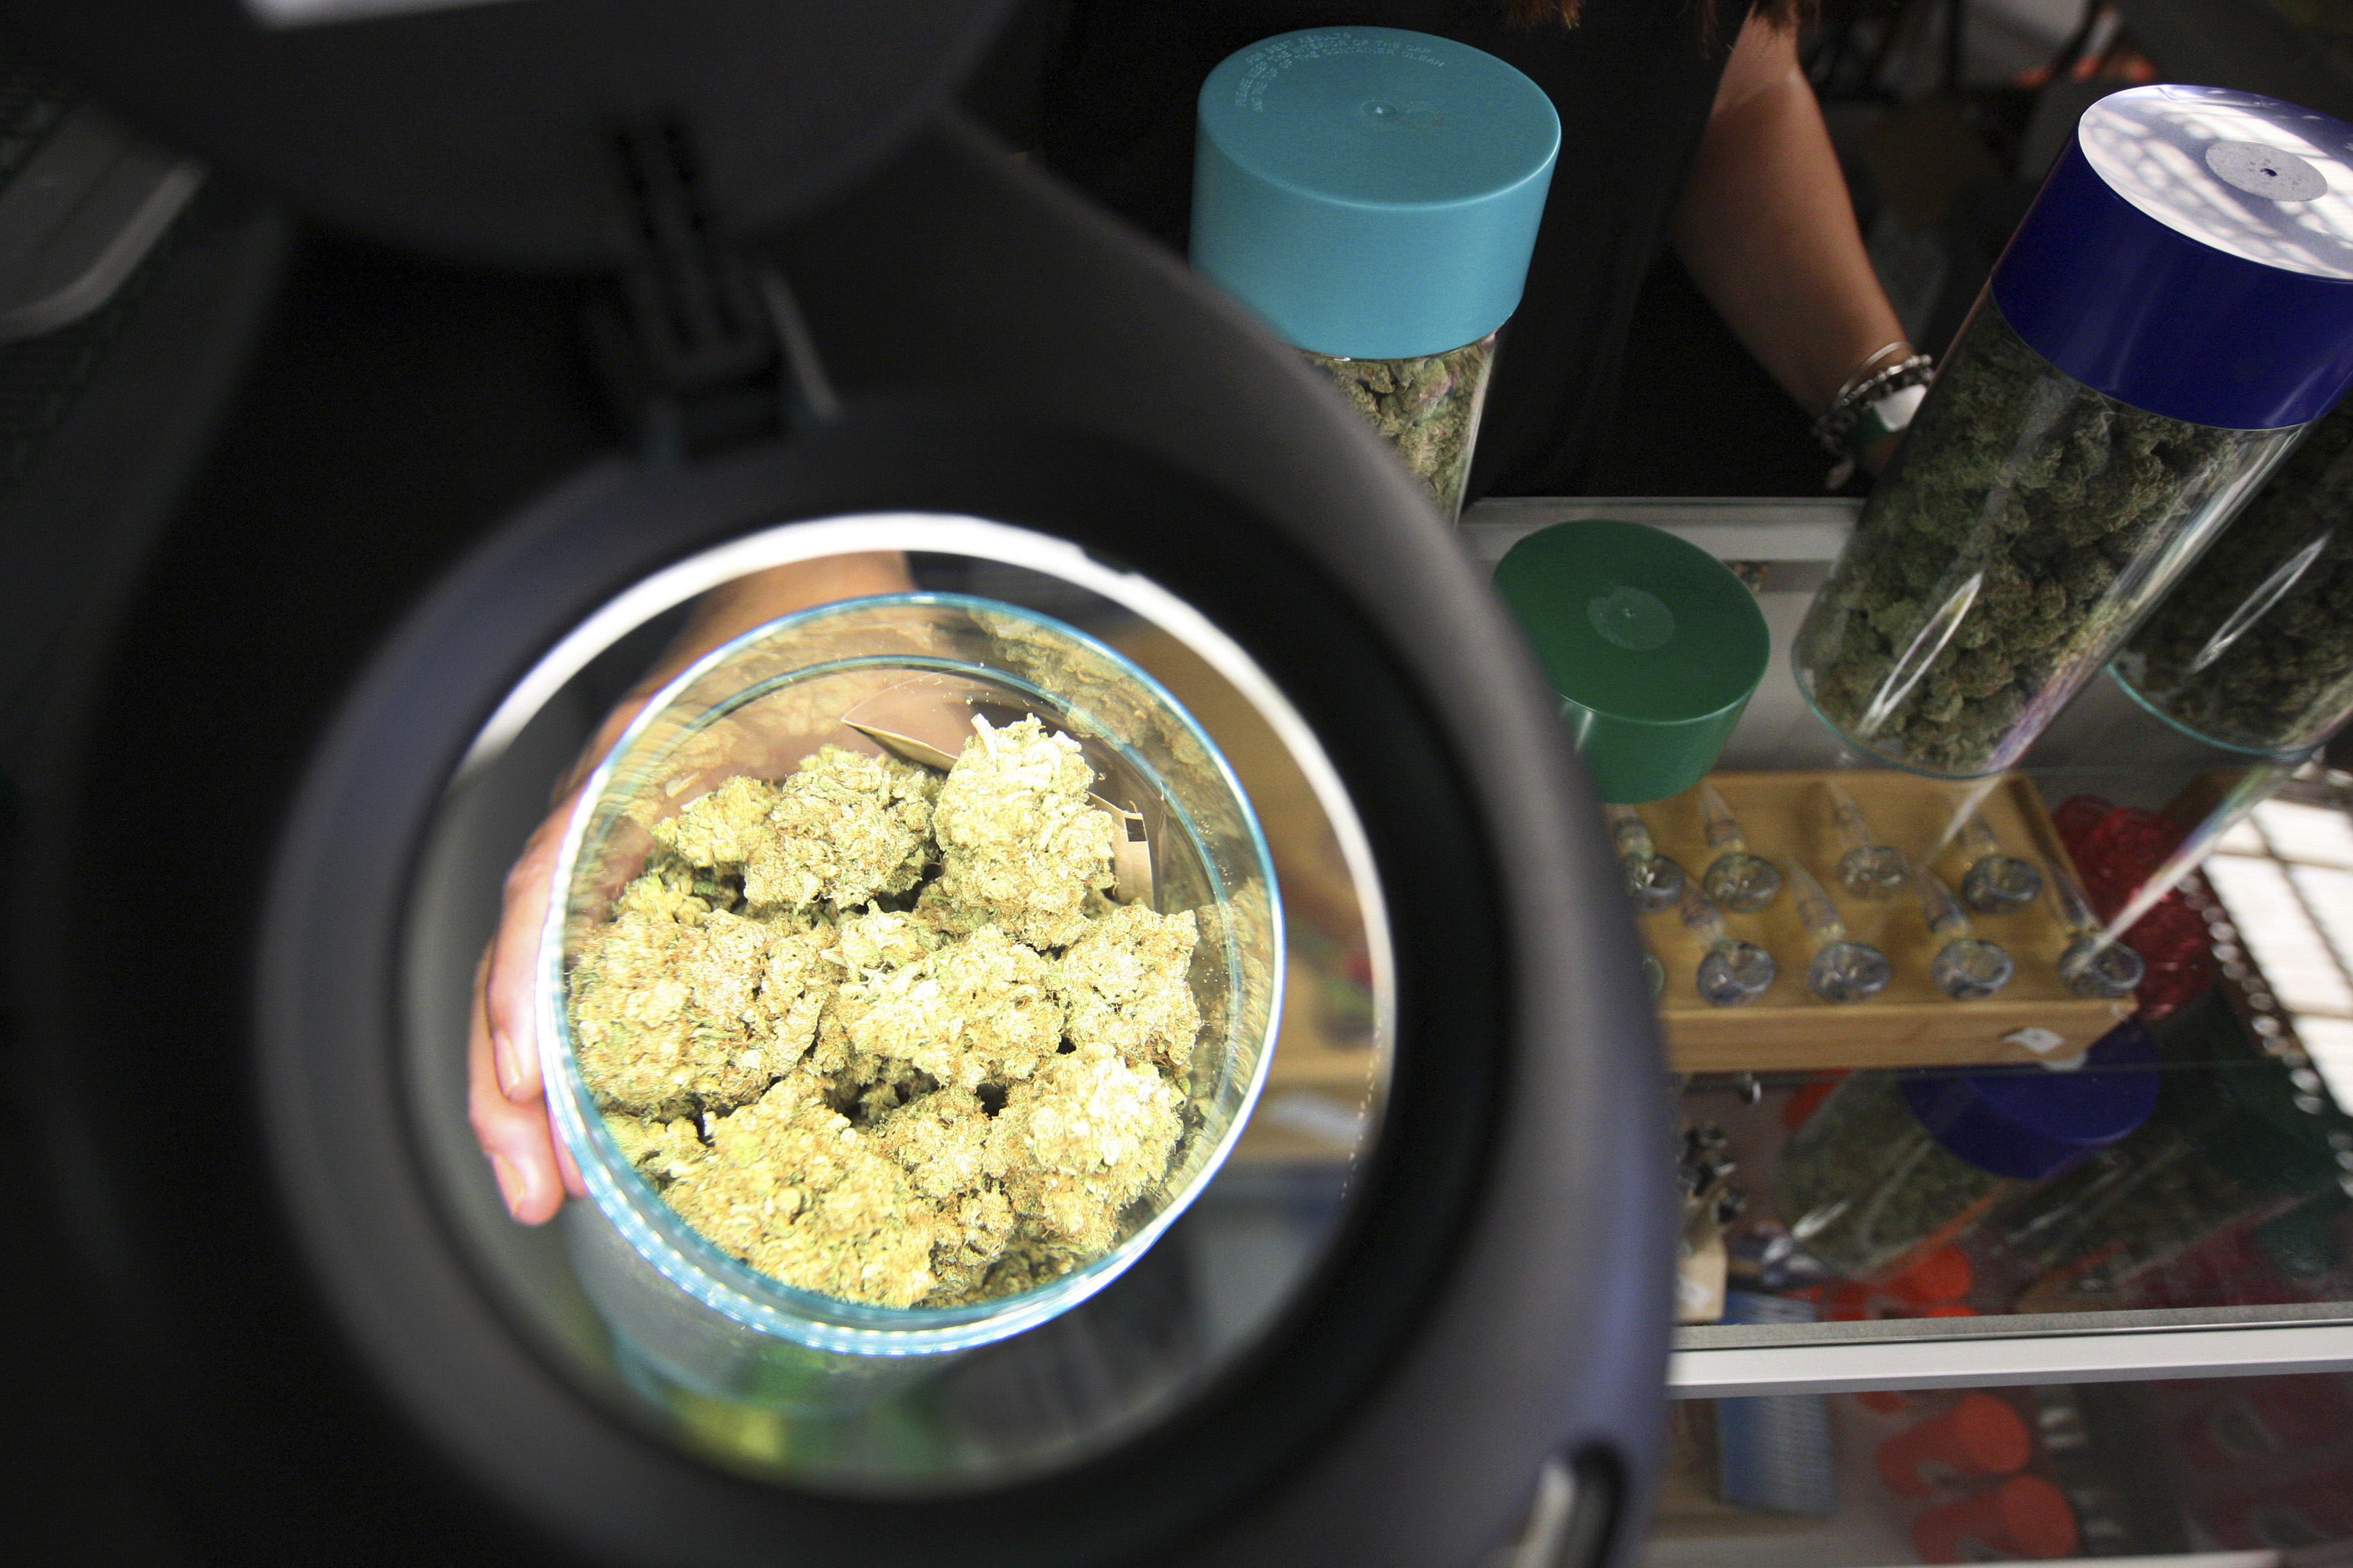 Marijuana is seen under a magnifier at the medical marijuana farmers market at the California Heritage Market in Los Angeles, California July 11, 2014